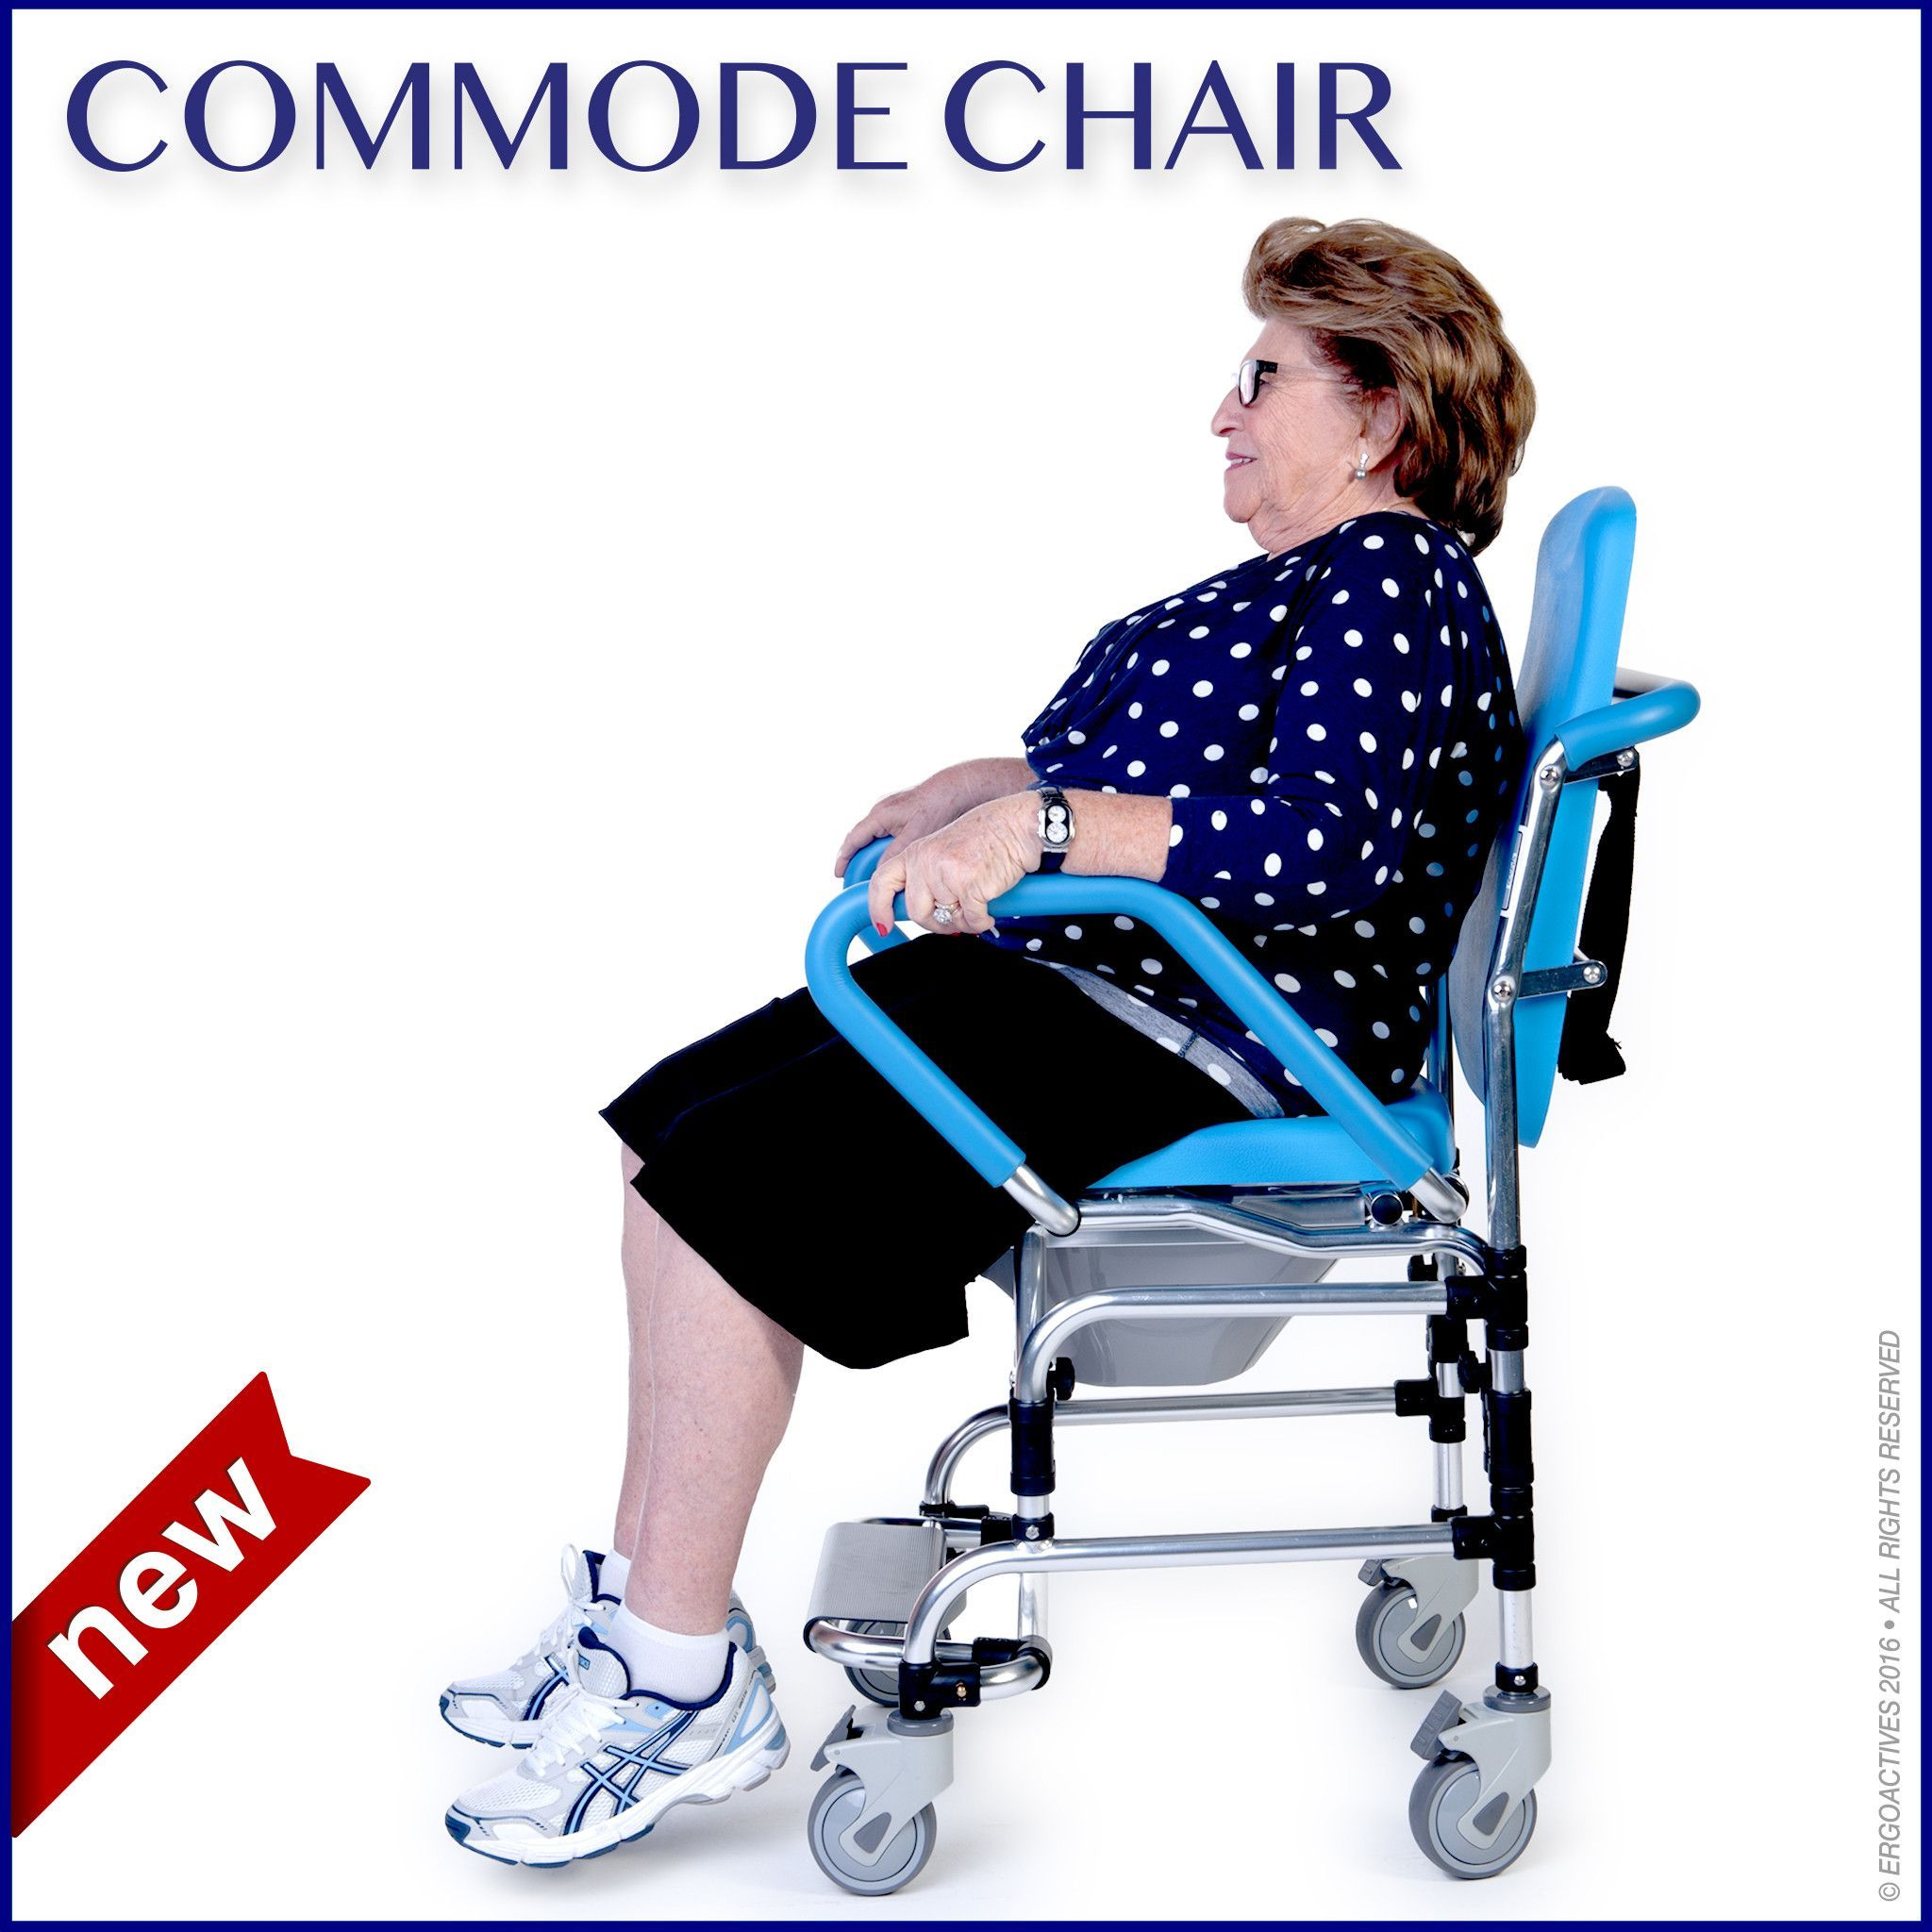 Commode Chair ERGOACTIVES Commode chair, Commode, Chair